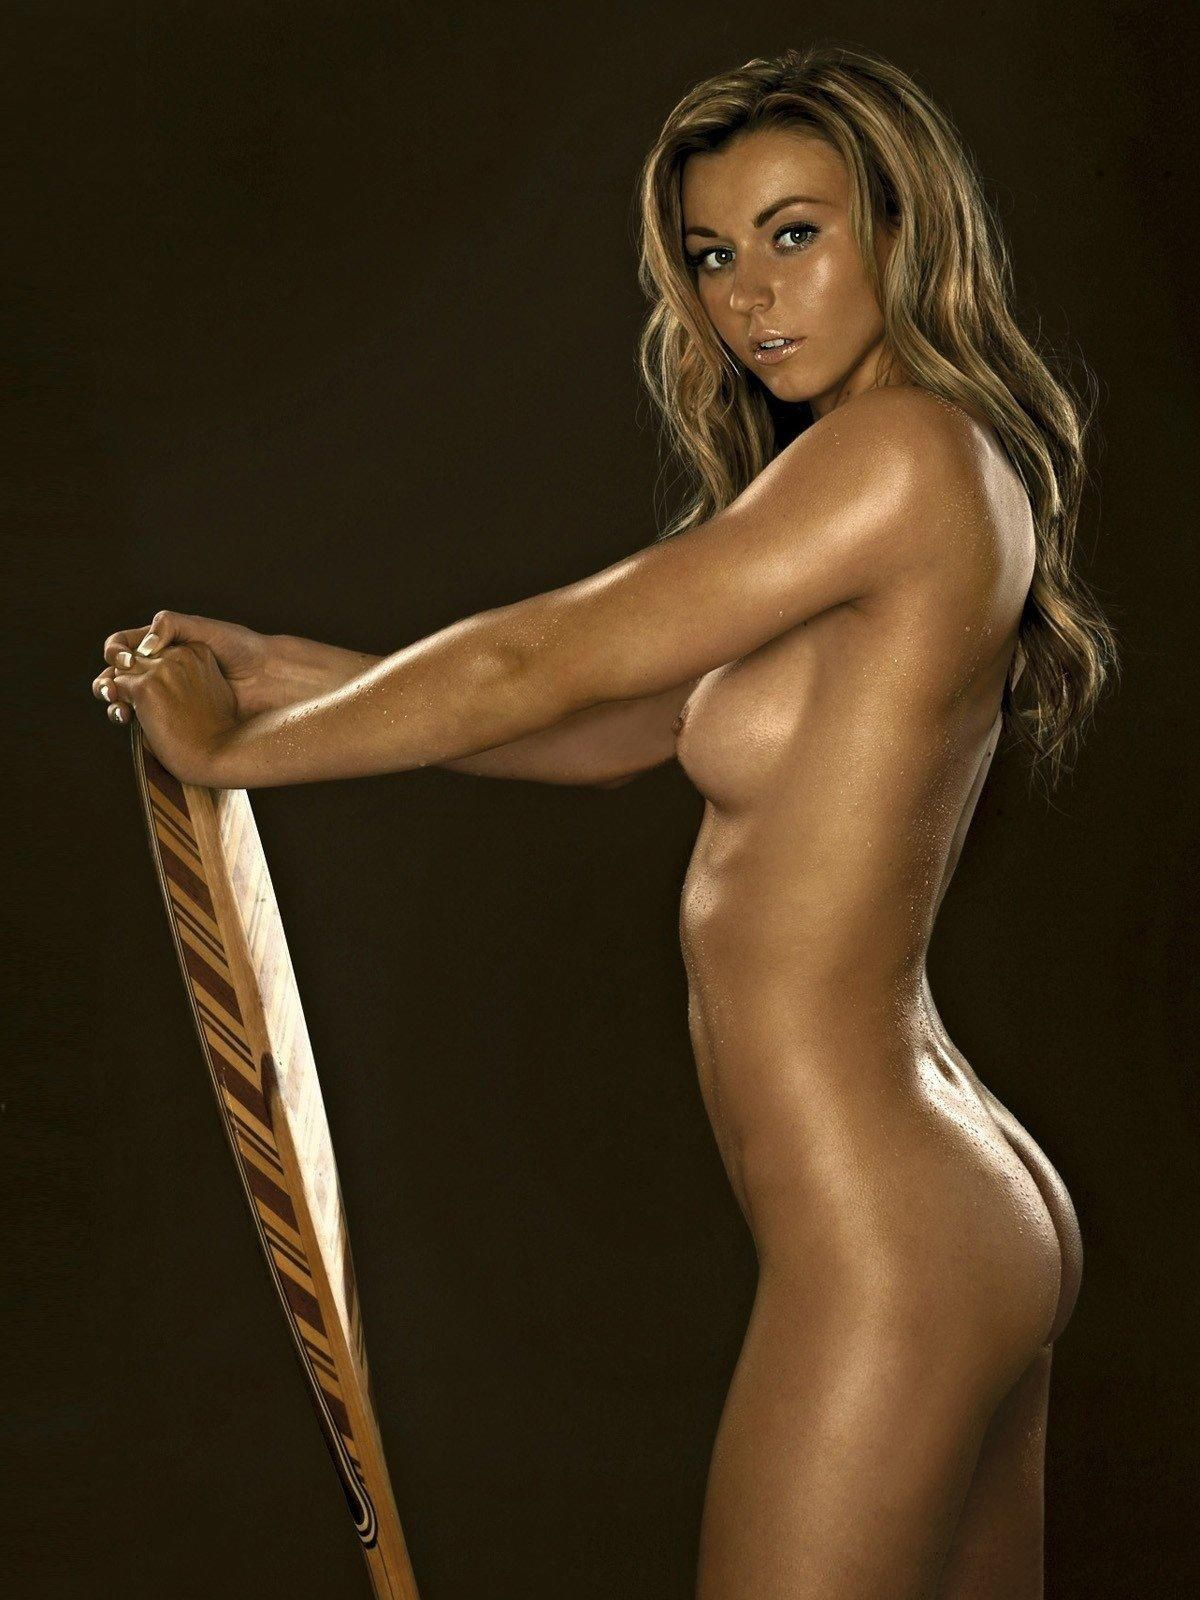 Naked Olympic Athletes  New Girl Wallpaper-2370